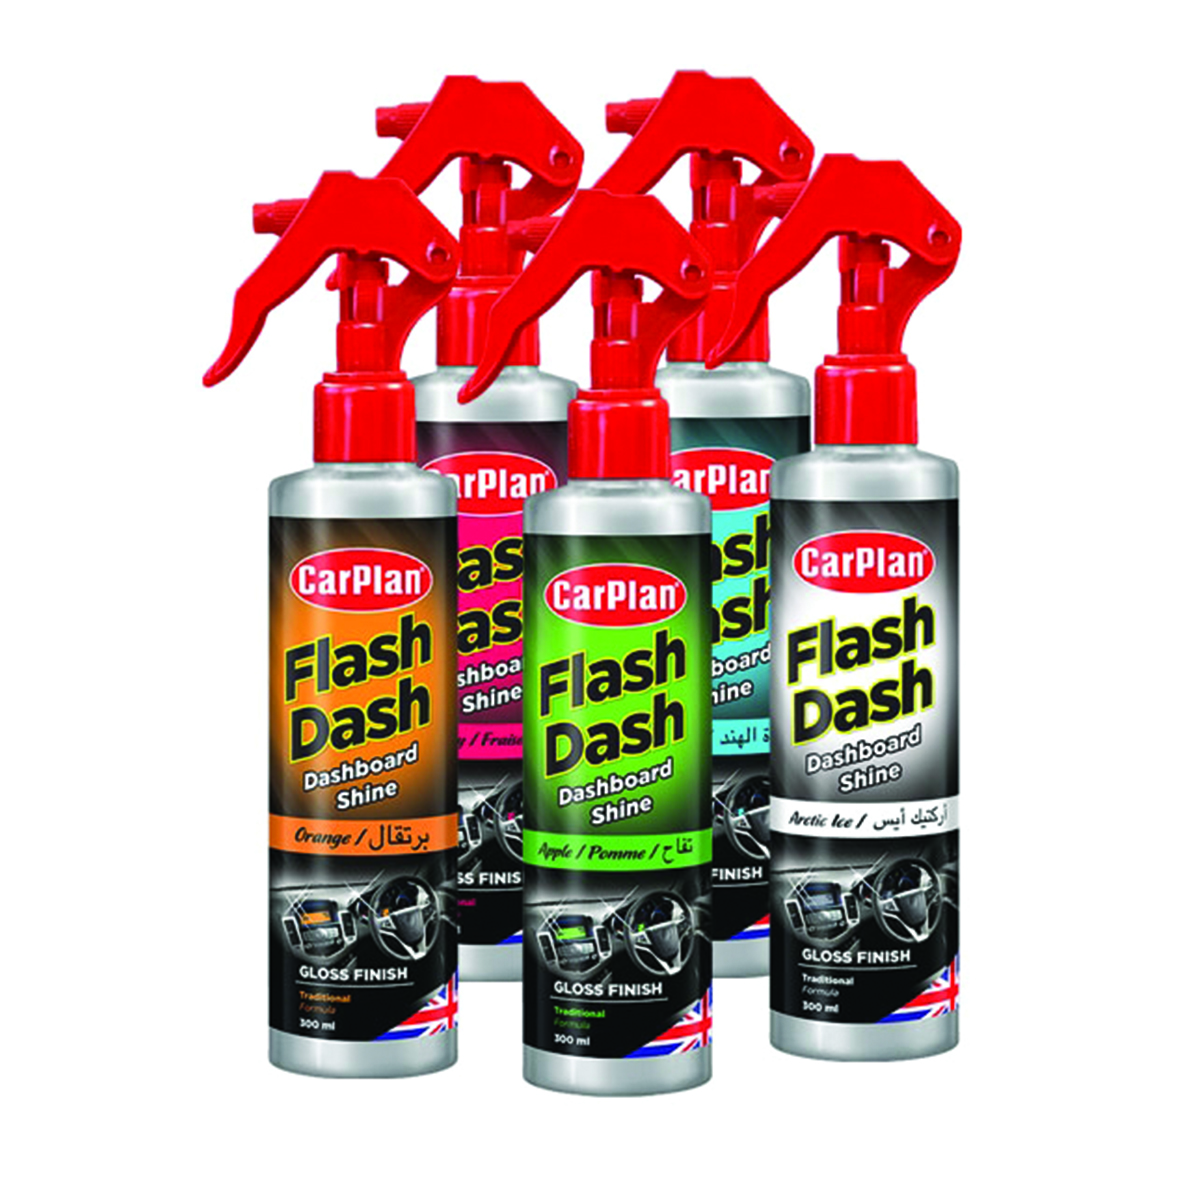 Flash Dash – Pump Spray